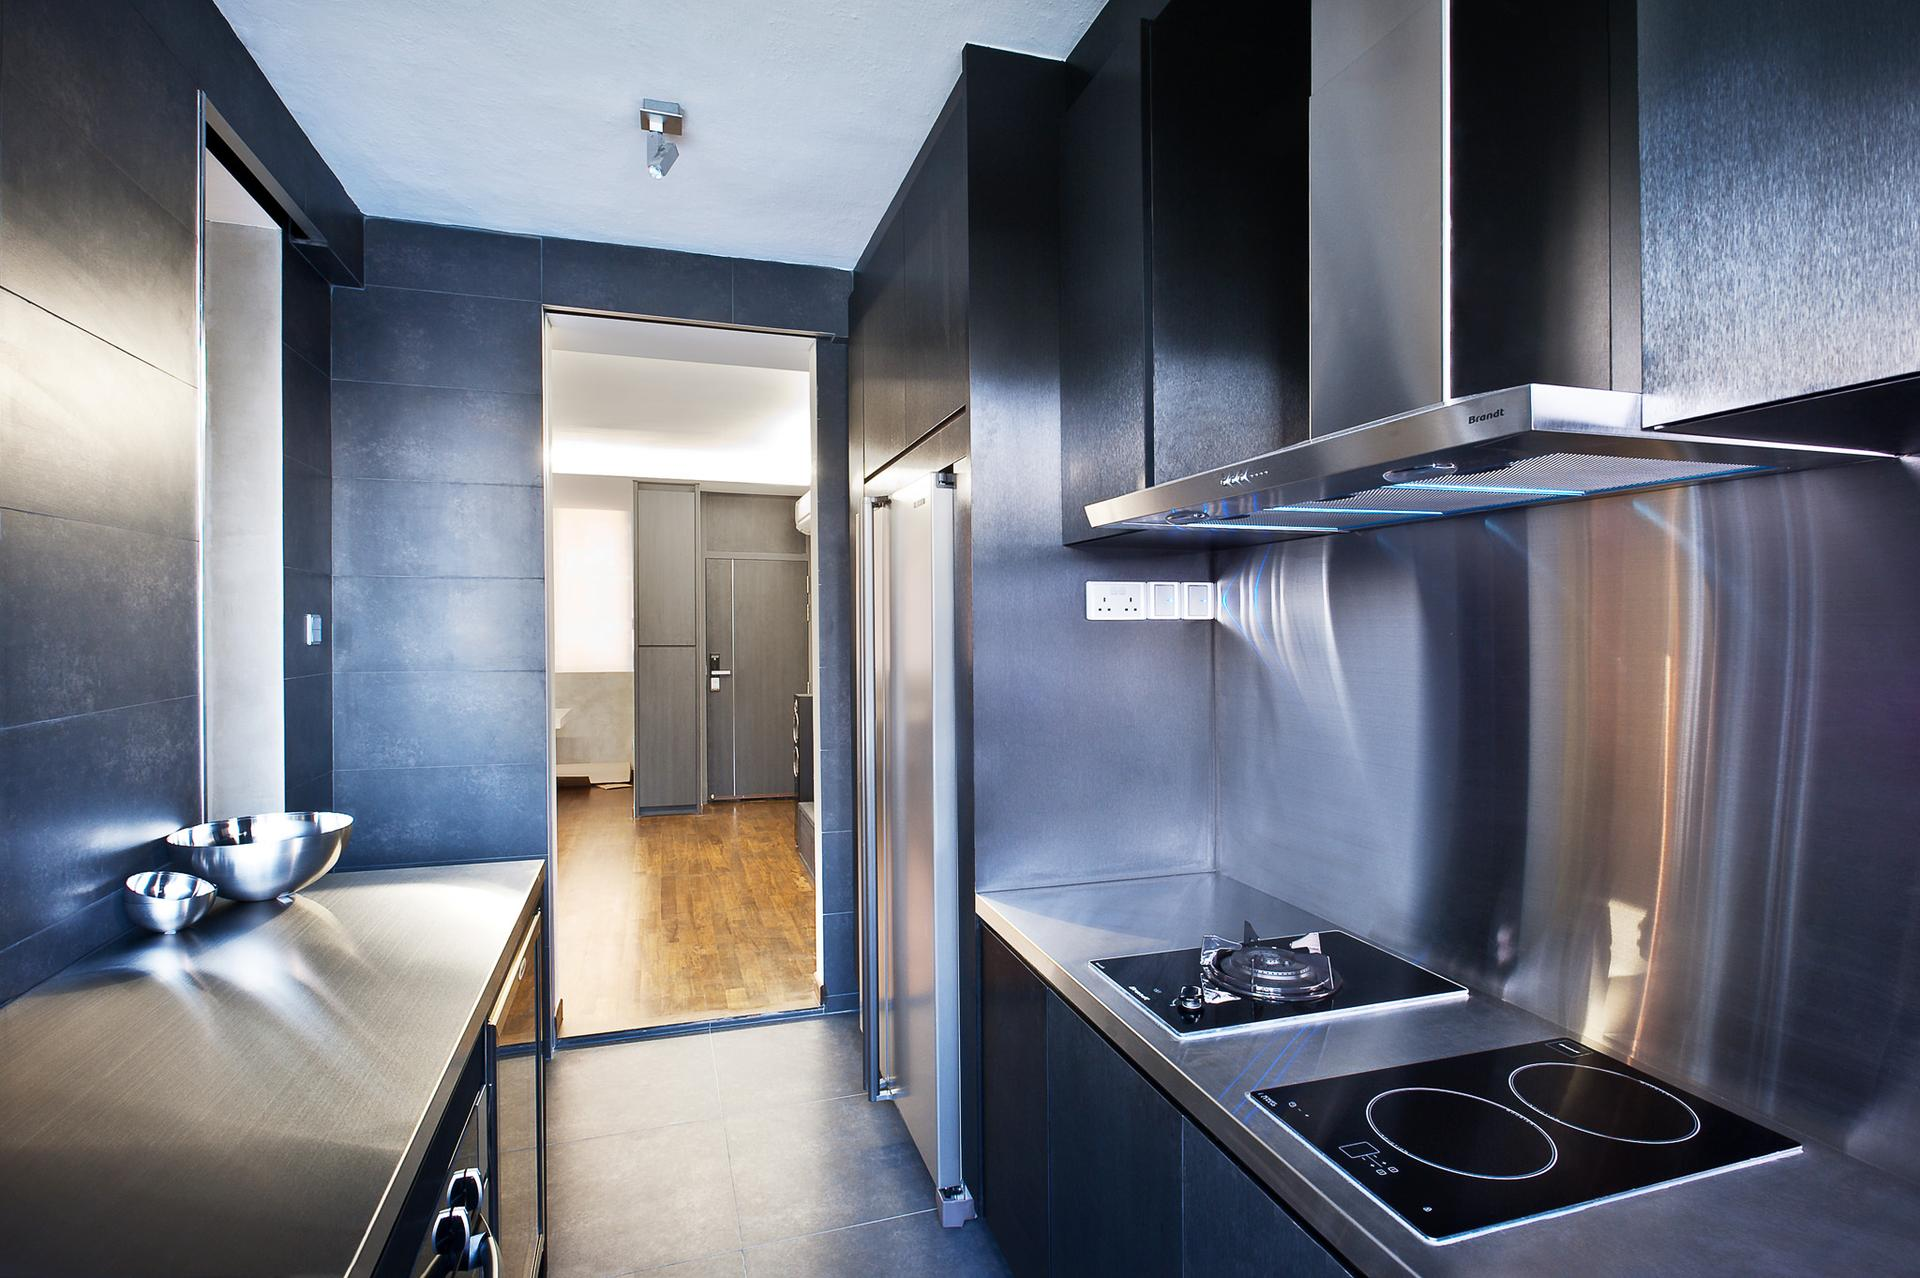 Black Furniture: Interior Design Photo Ideas. Hi-tech styled tiny all-functional kitchen with dark steel surfaces